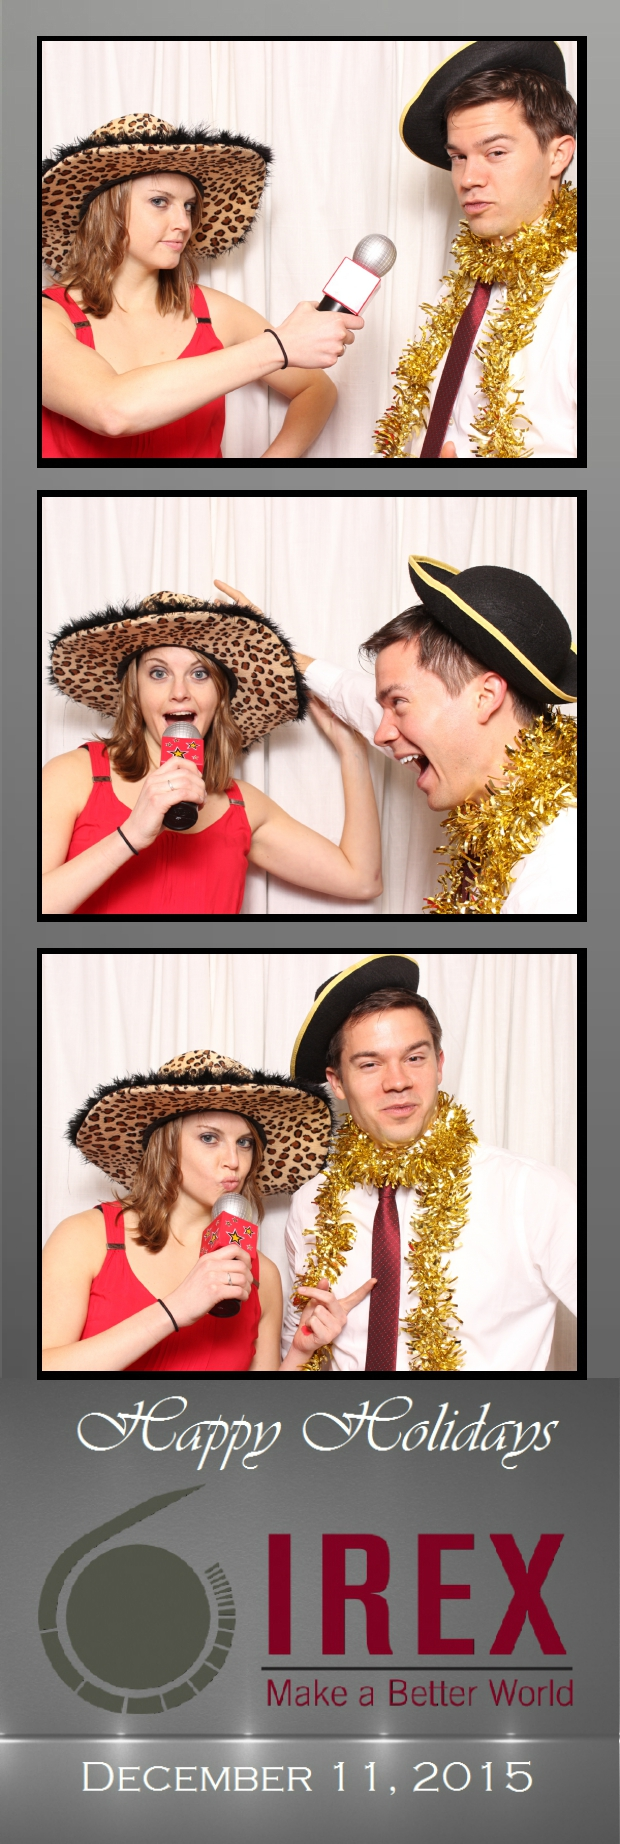 Guest House Events Photo Booth Strips IREX (66).jpg